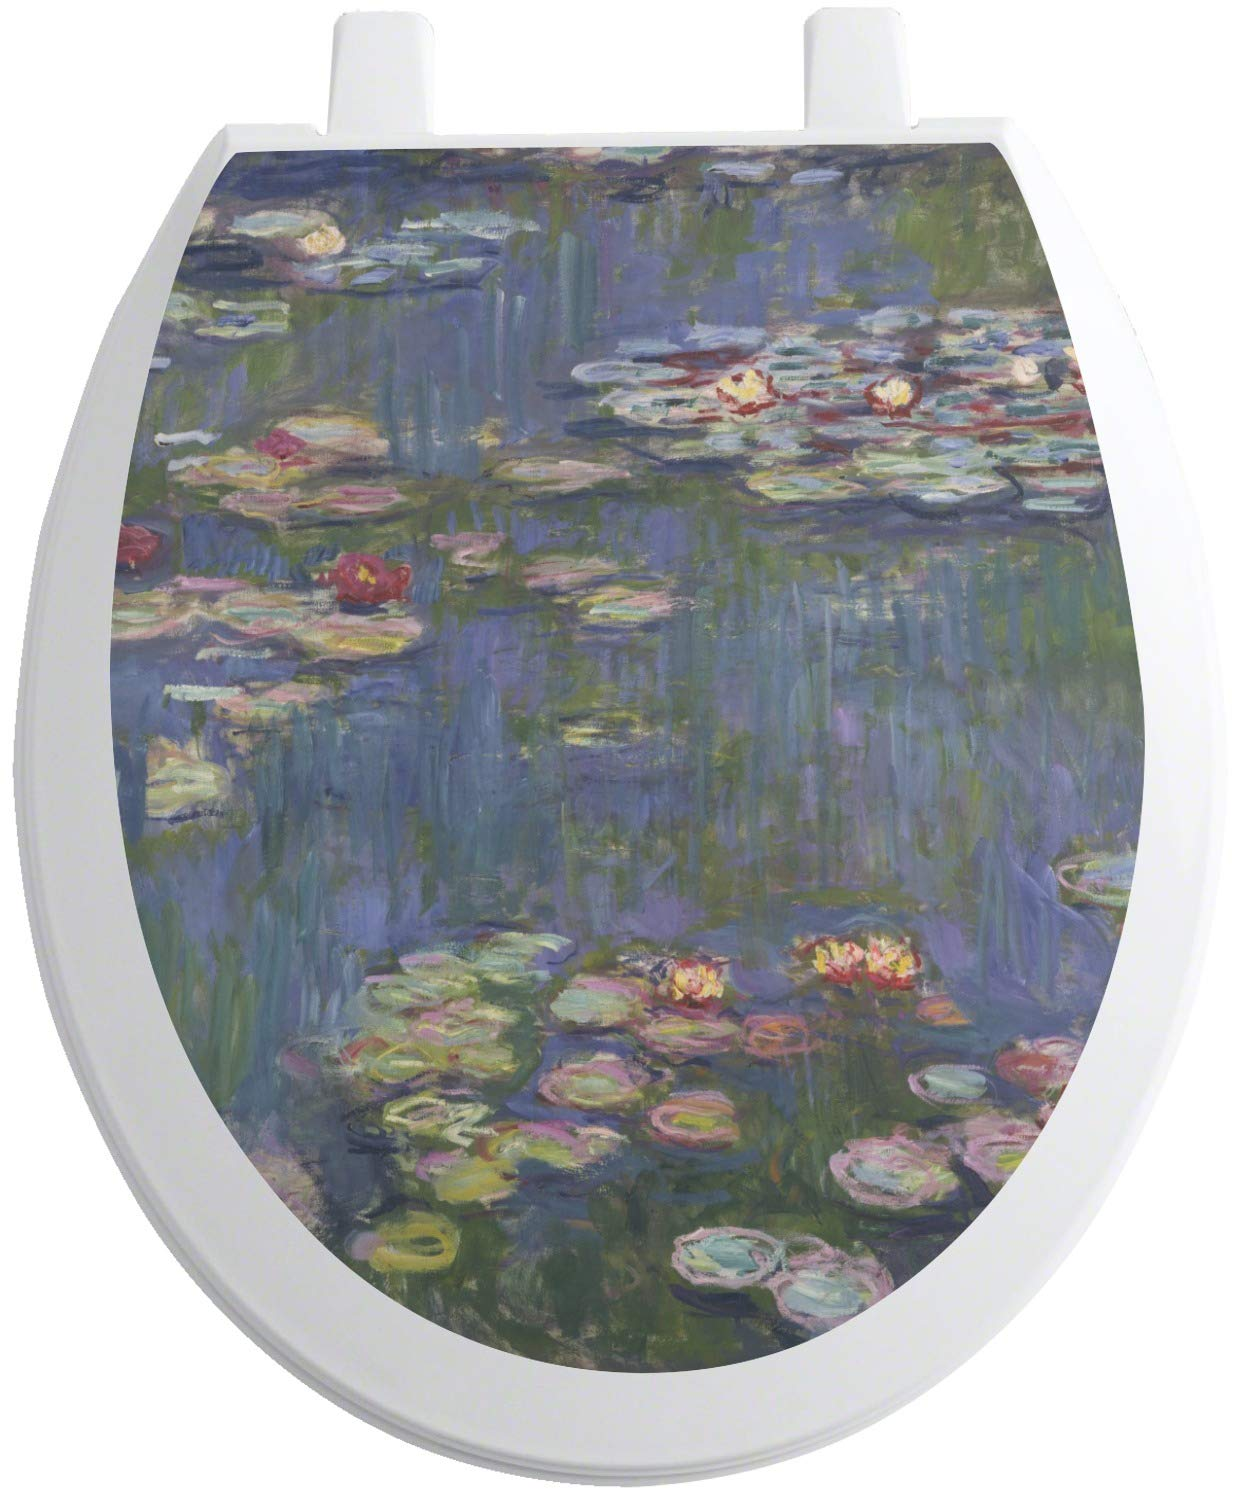 RNK Shops Water Lilies by Claude Monet Toilet Seat Decal - Round by RNK Shops